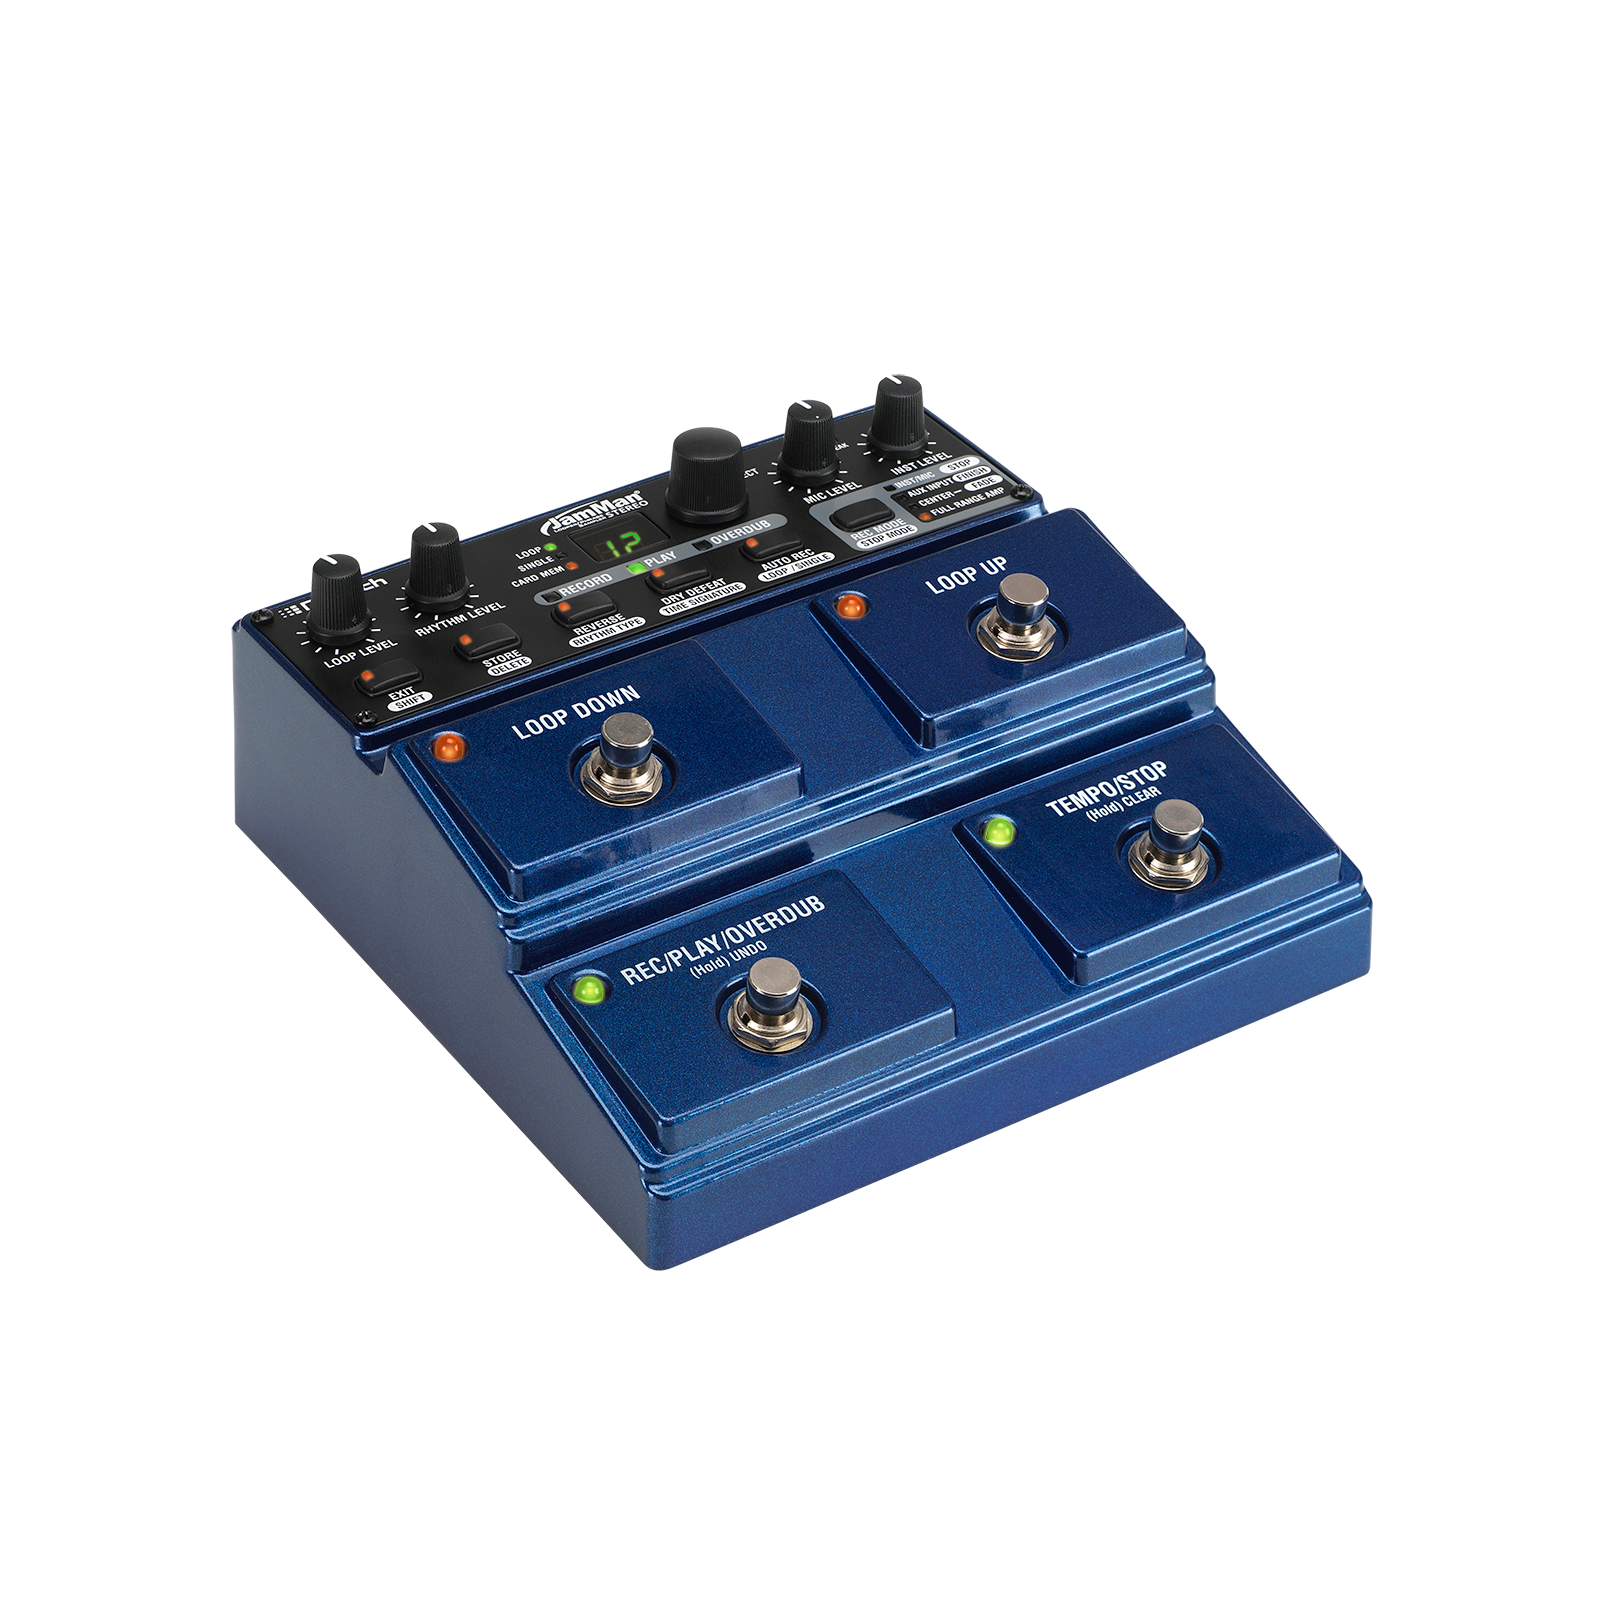 JamMan Stereo - Blue - Stereo Looping Pedal with 35 Minutes of Internal Recording Capacity, SDHC Card Expansion, and Included JamManager Loop Librarian Software - Hero